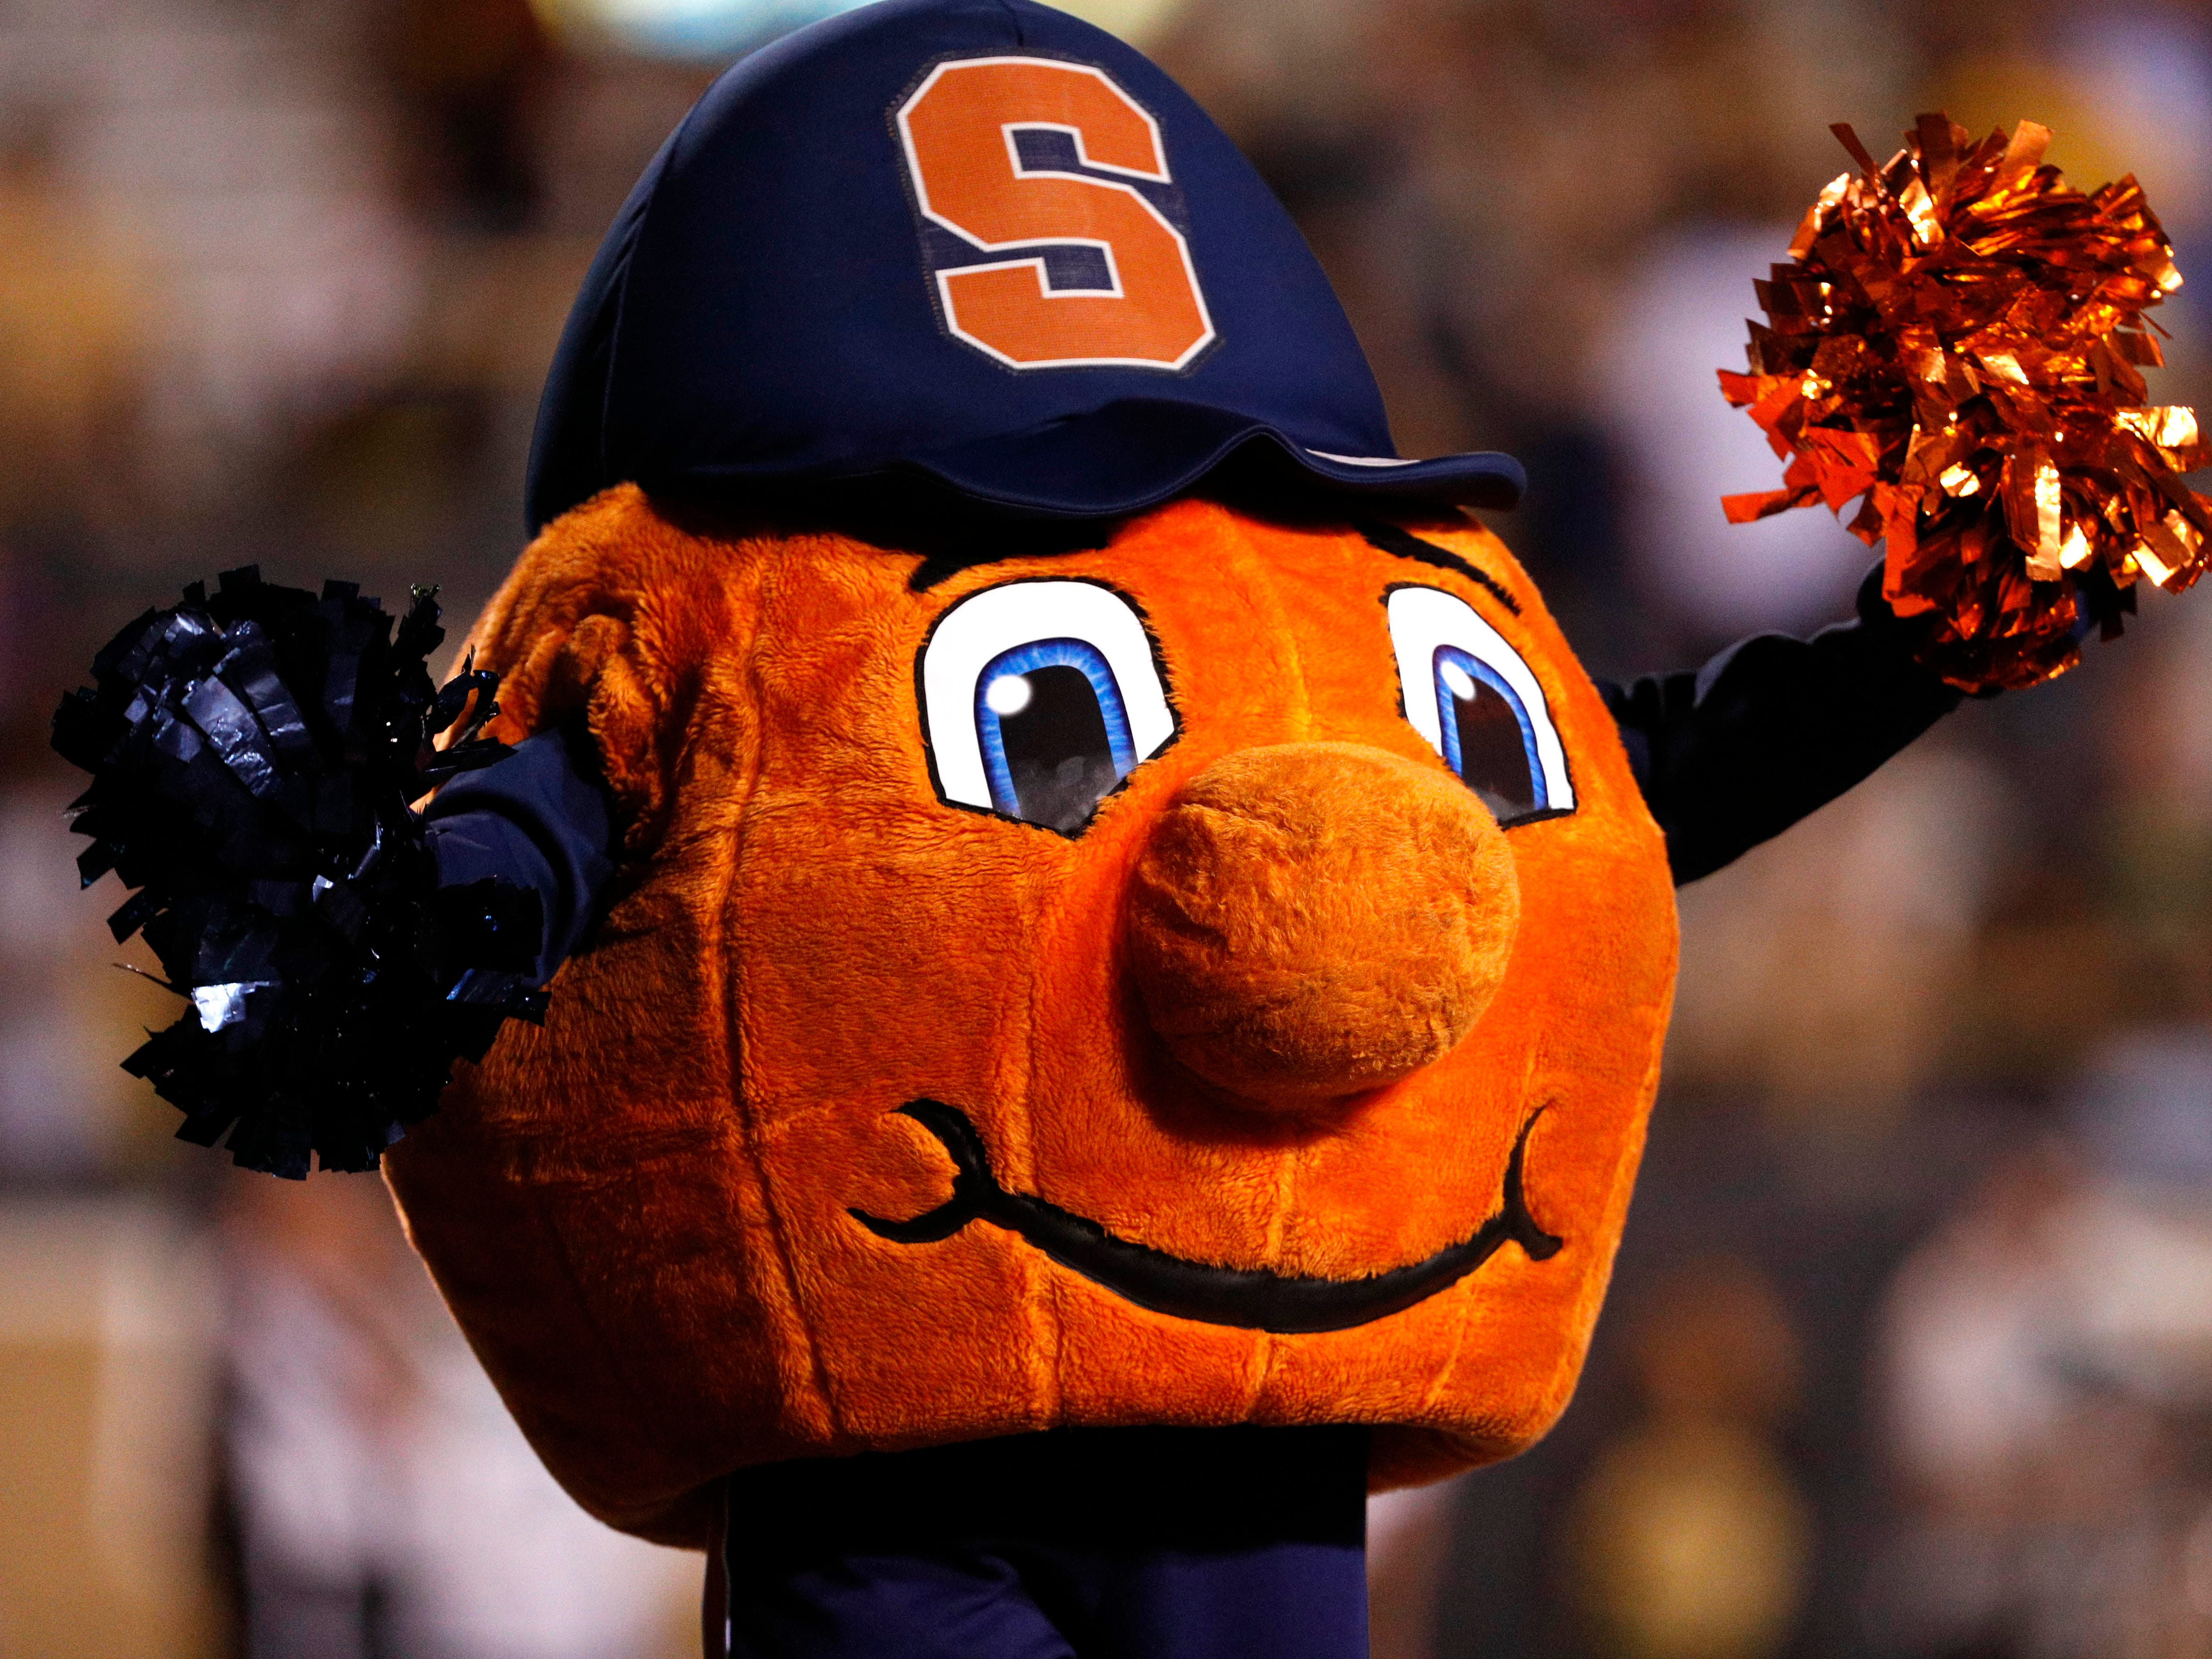 Syracuse's Otto the Orange is mostly harmless but still a little creepy.